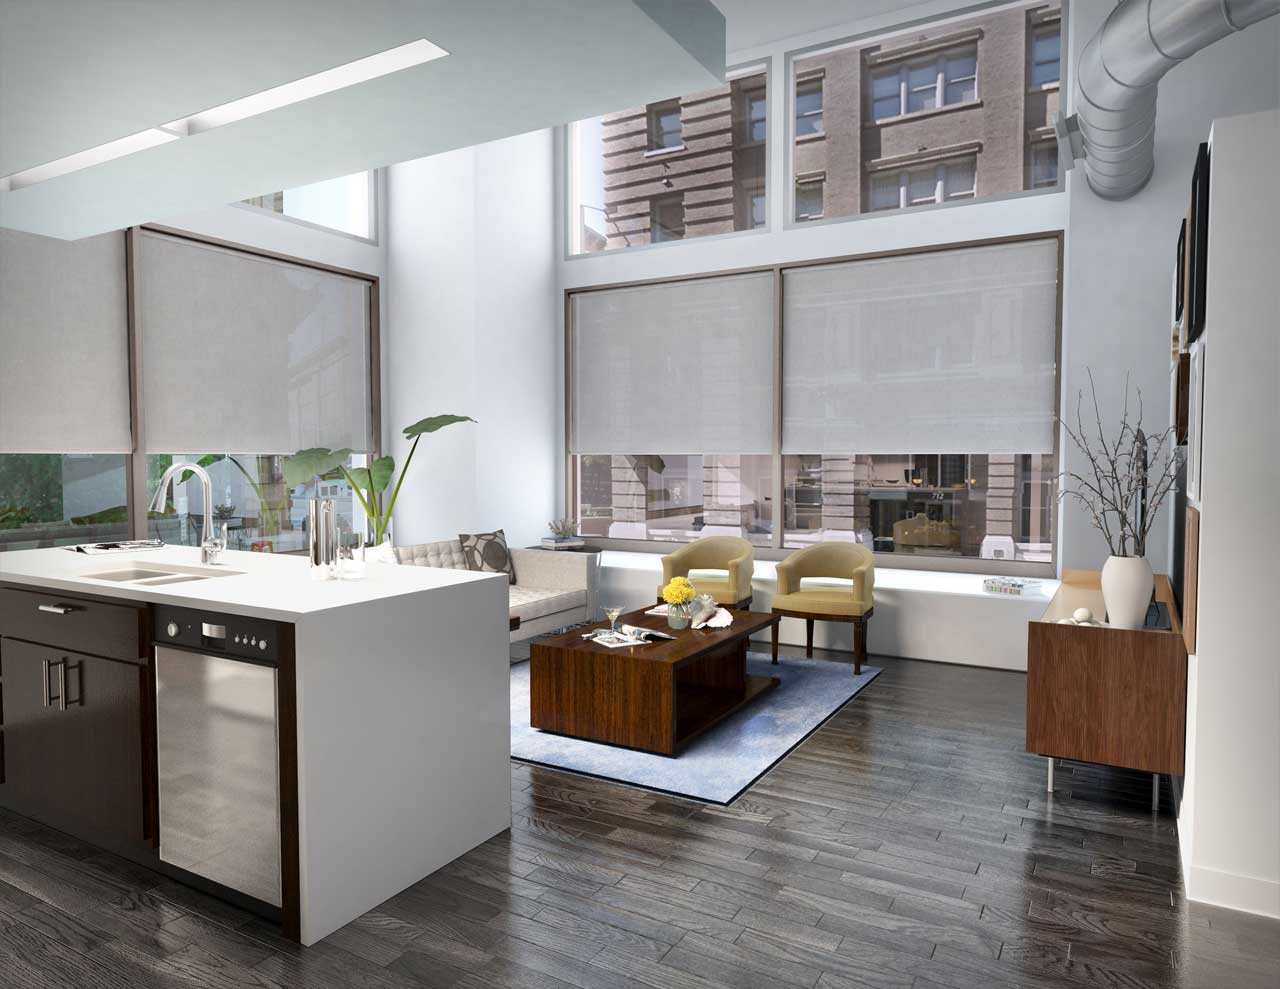 A rendered view from kitchen to living room of a proposed condominium interior.